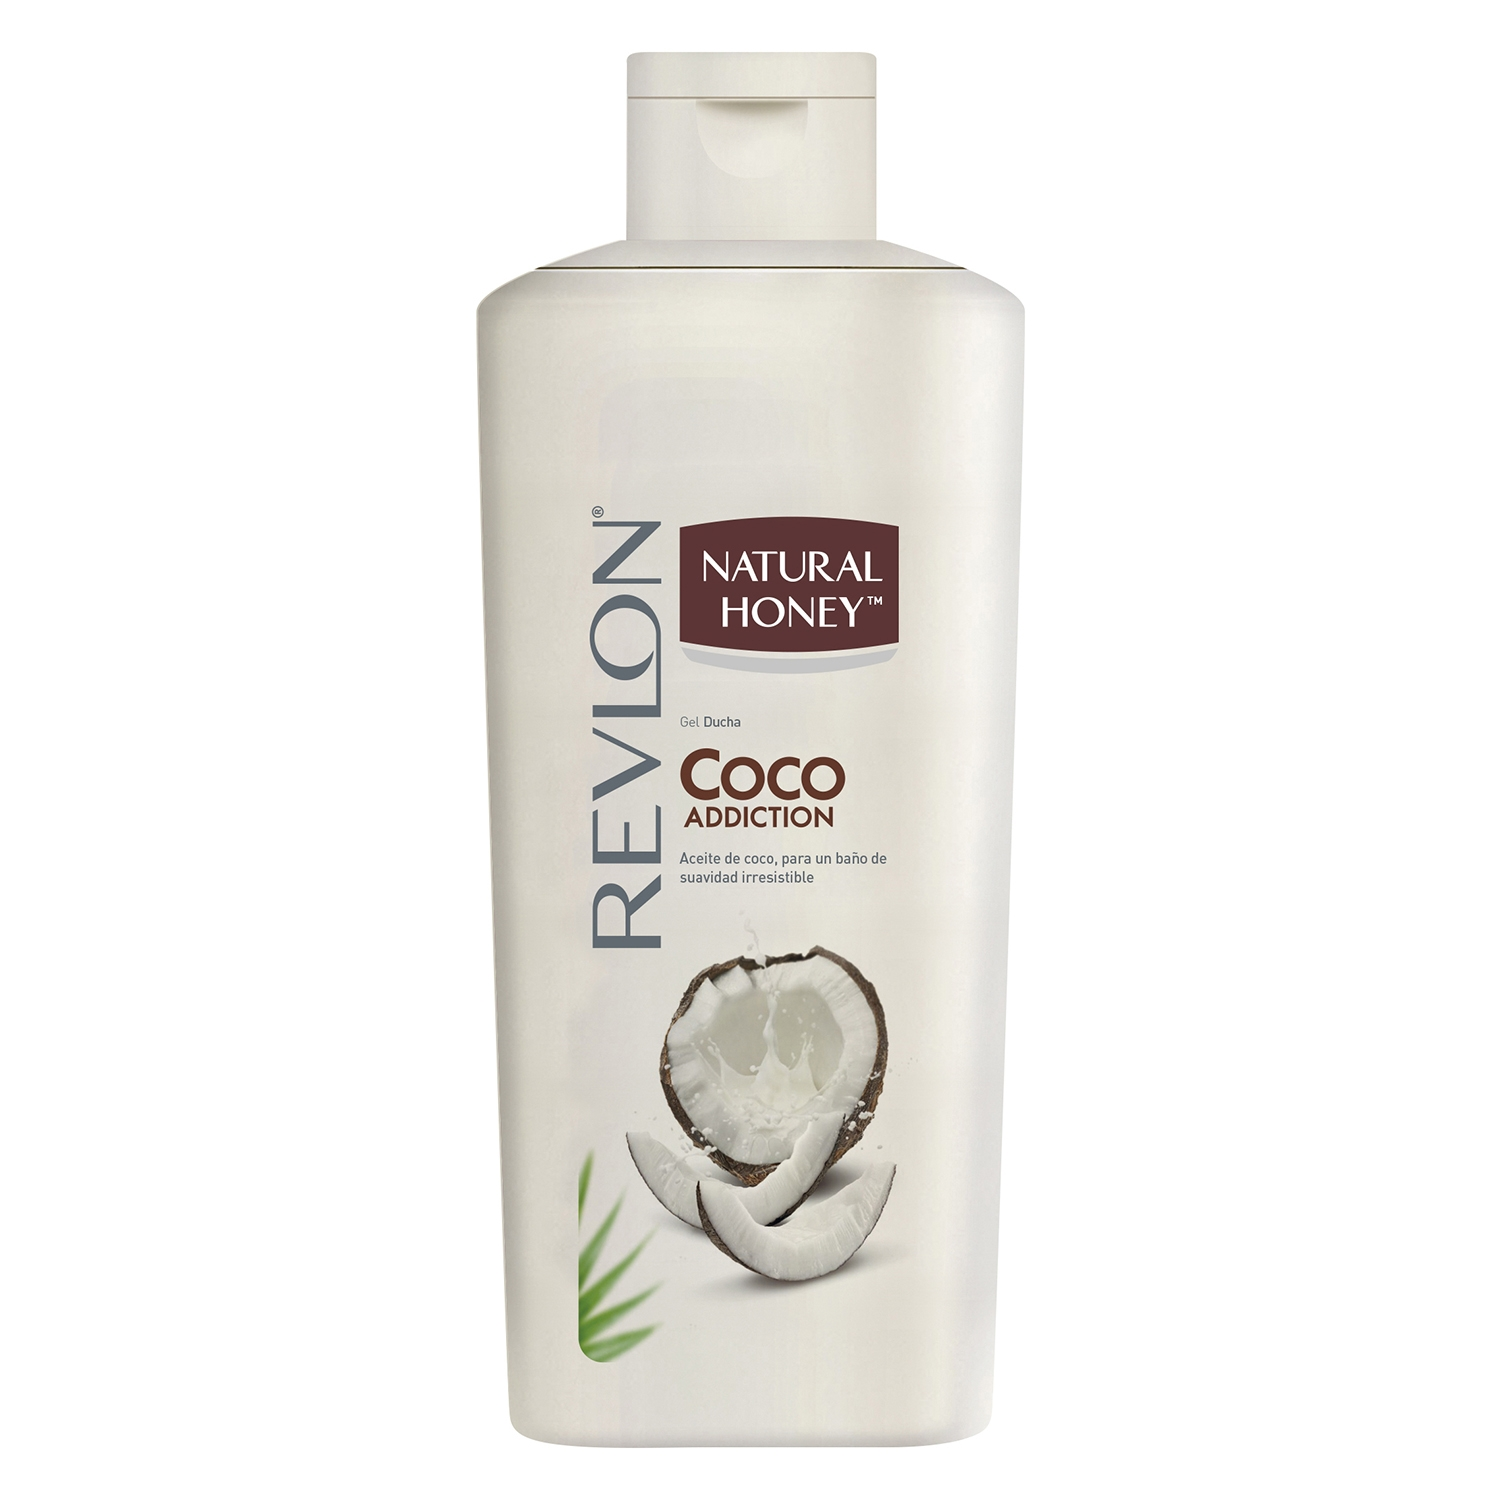 Gel de ducha de coco addiction